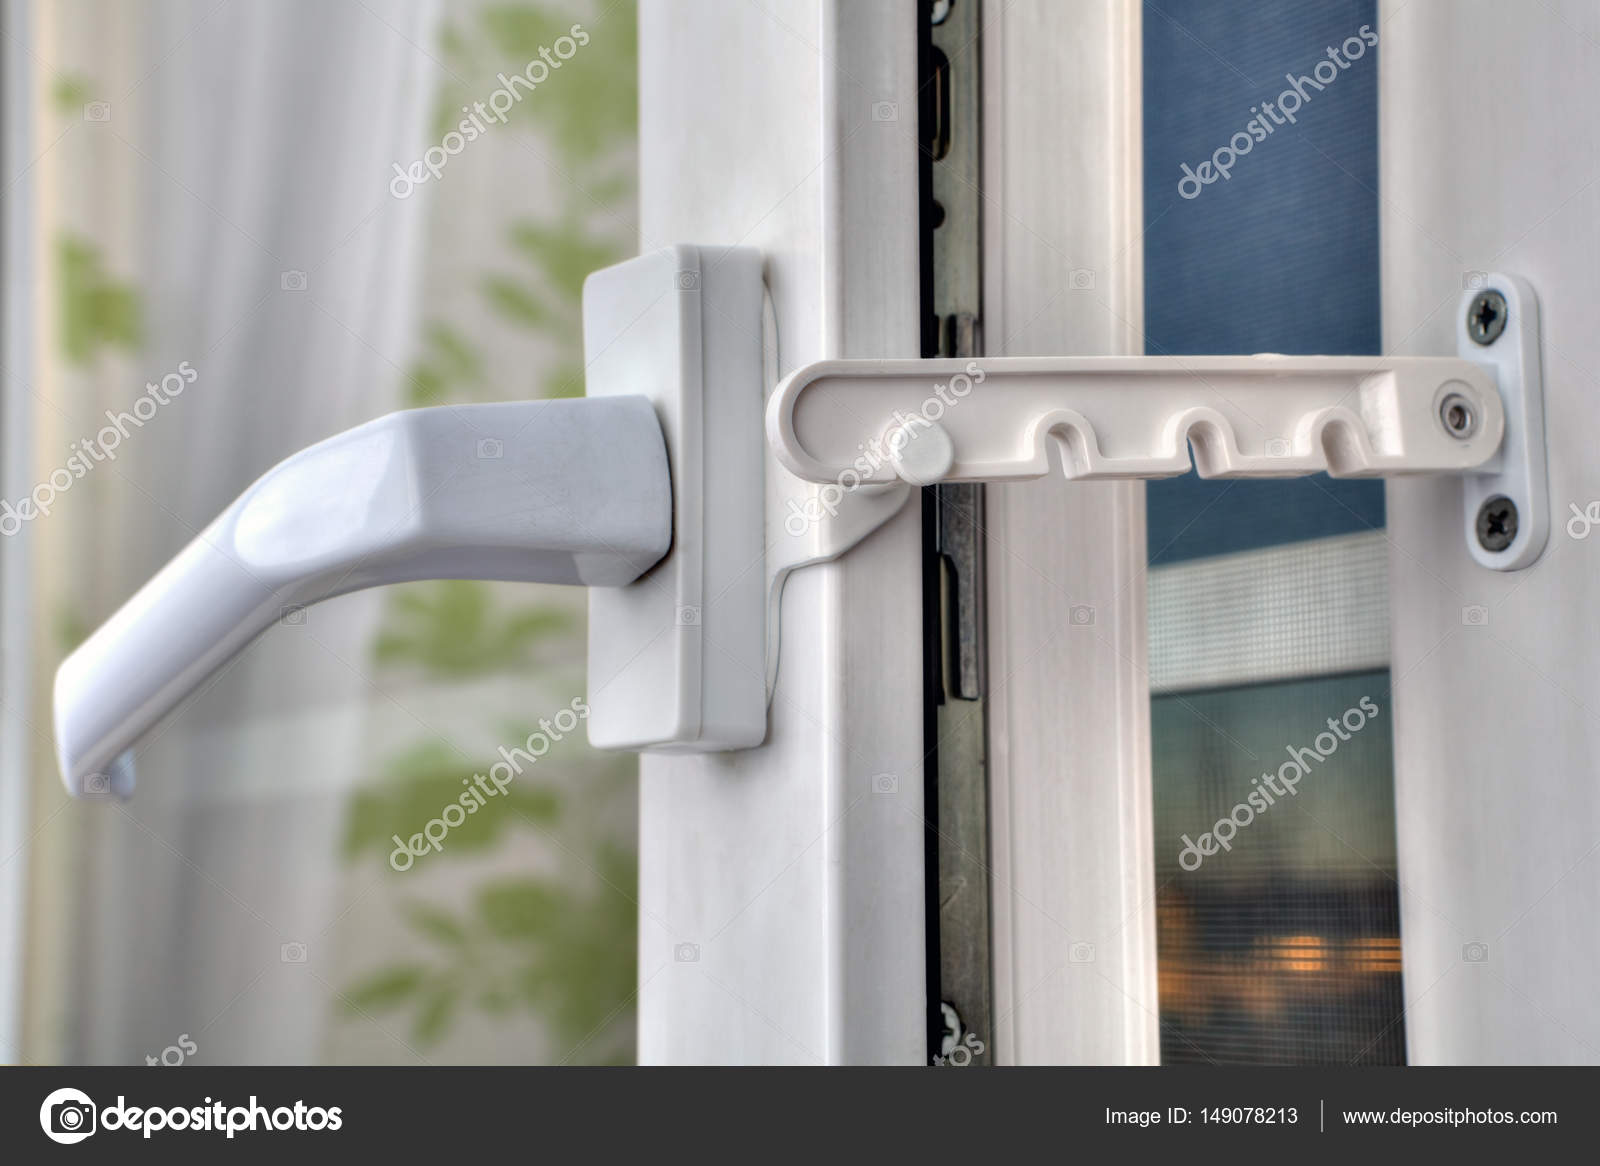 Use of restrictor opening PVC windows at airing the room. u2014 Stock Photo & Use of restrictor opening PVC windows at airing the room. u2014 Stock ...